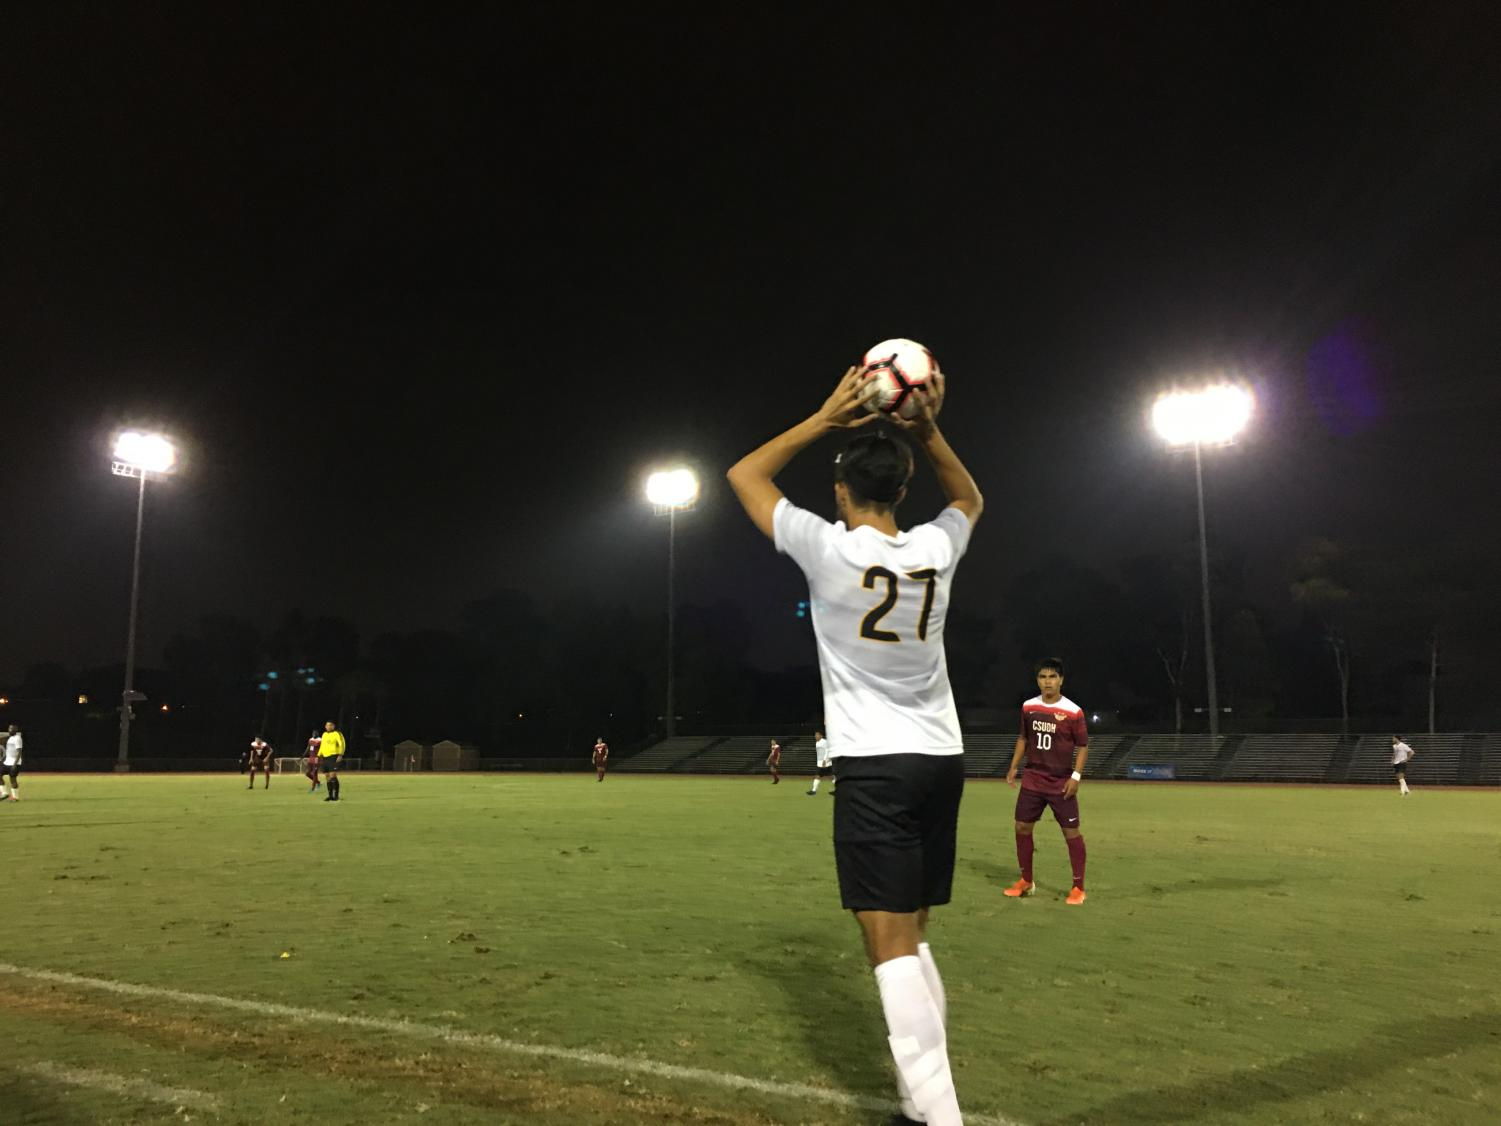 Cal State LA men's soccer won against Cal State Dominguez Hills in a game of 6-0.